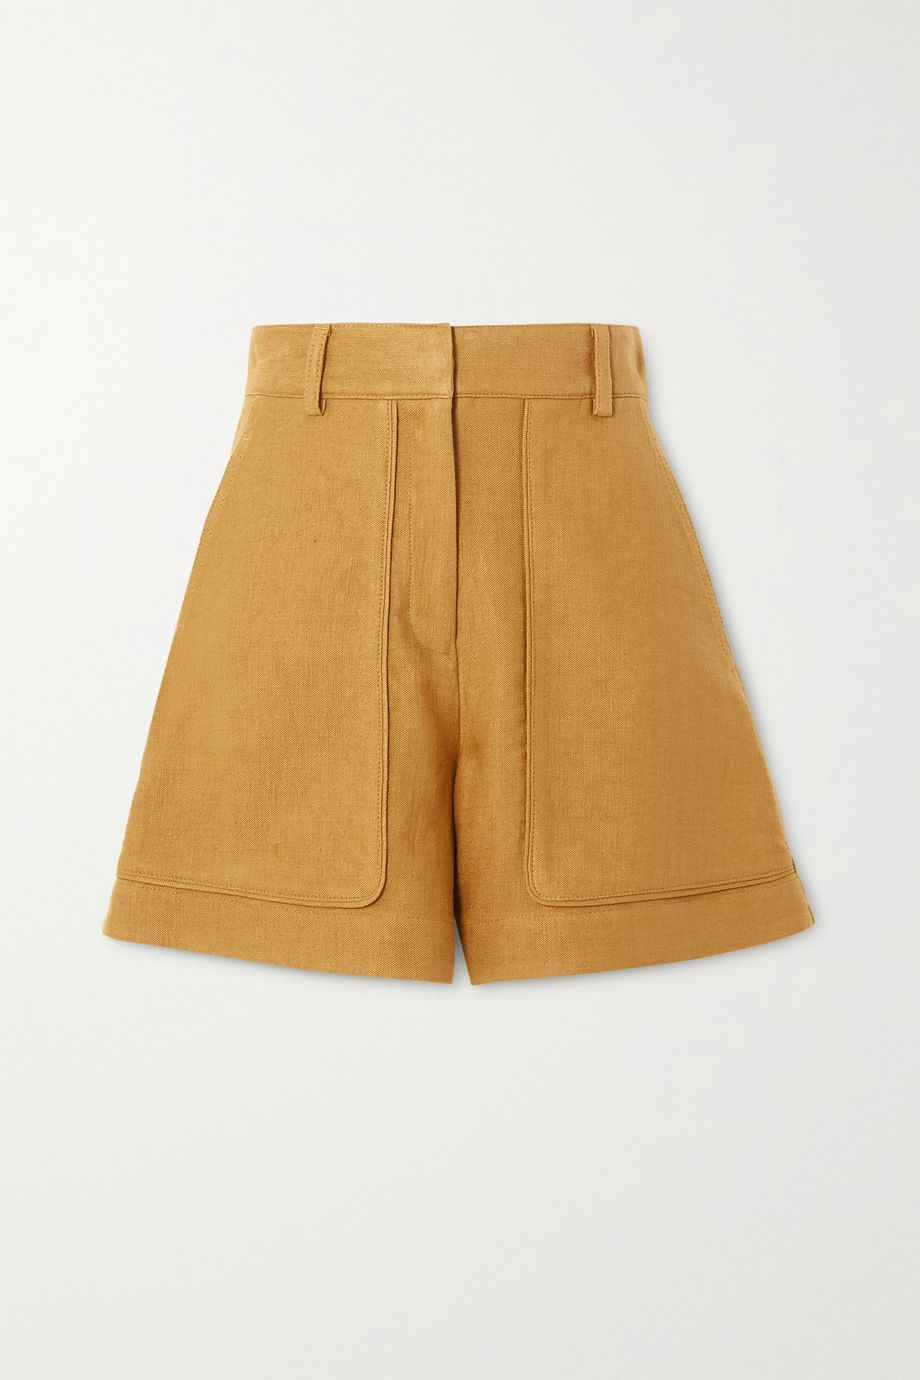 Vanessa Bruno Iala linen and cotton-blend shorts